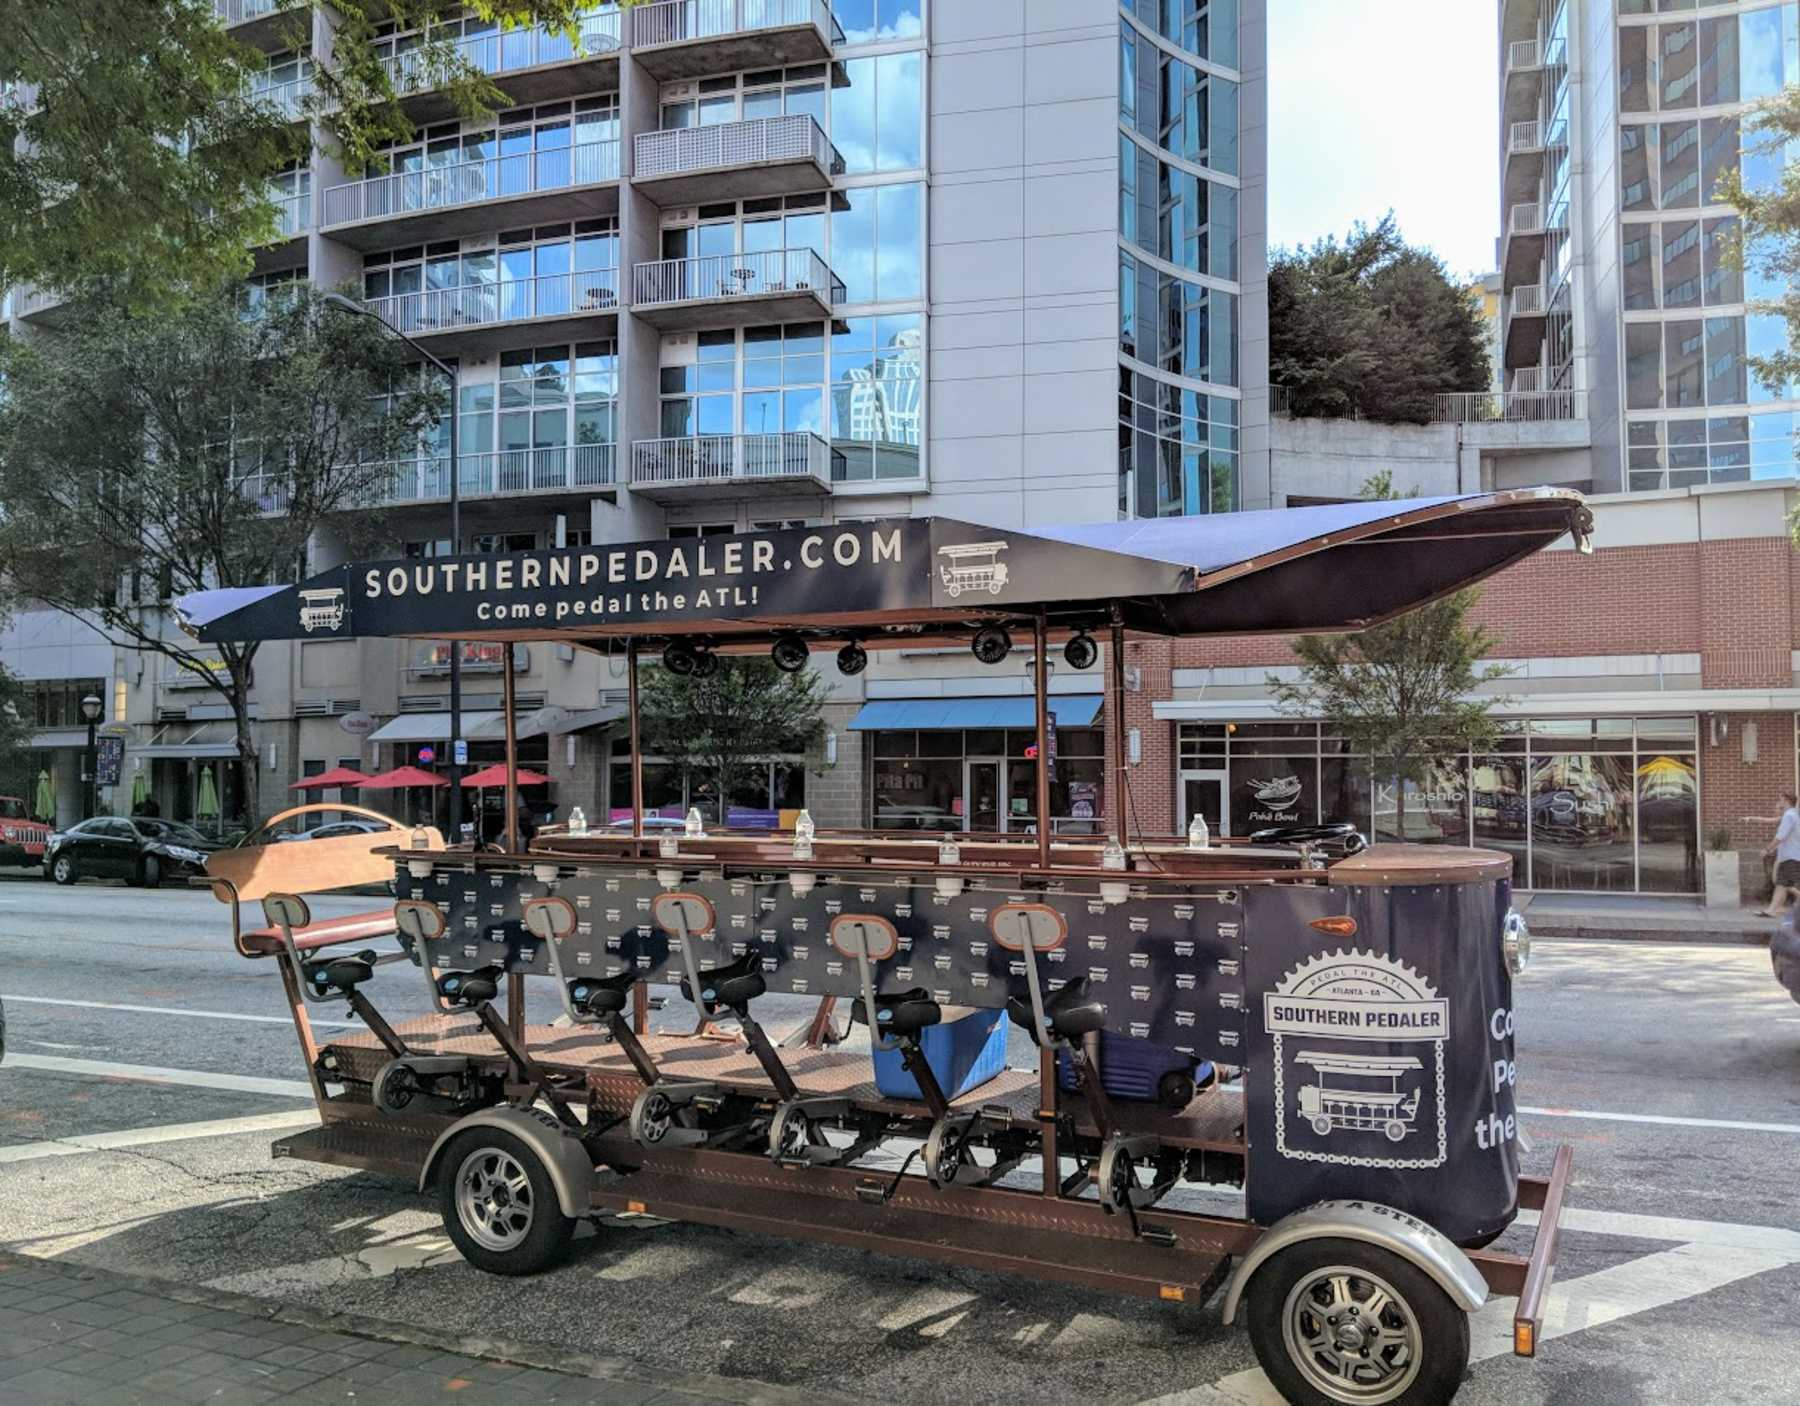 Atlanta's Only Pedal Tavern: Southern Pedaler